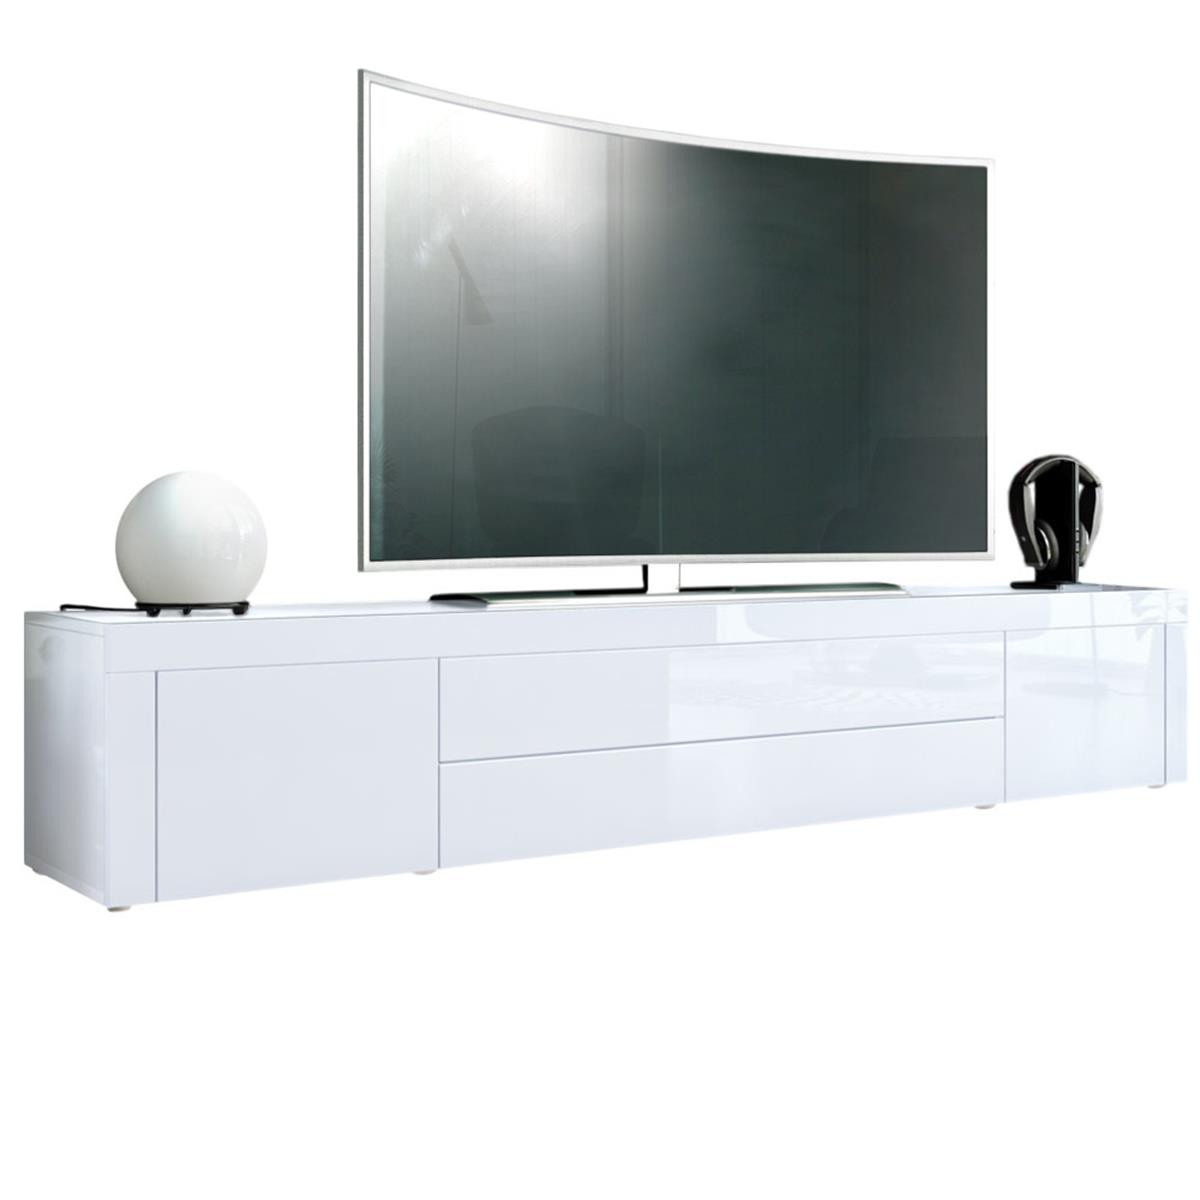 steinwand balken mit tv haus design m bel ideen und innenarchitektur. Black Bedroom Furniture Sets. Home Design Ideas